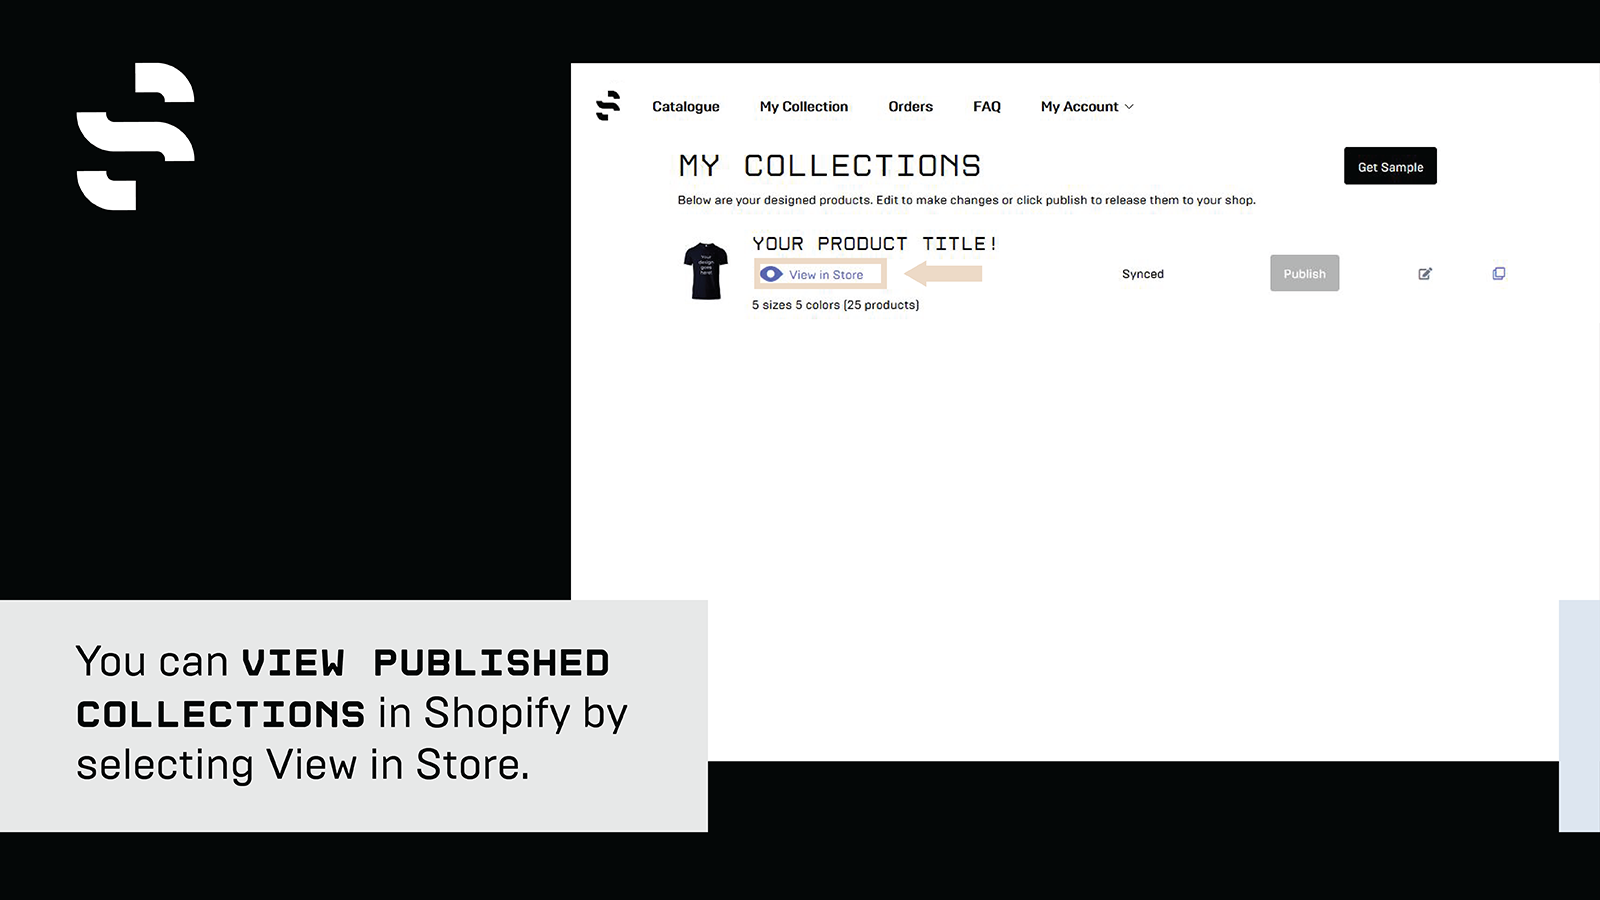 View published collections in Shopify